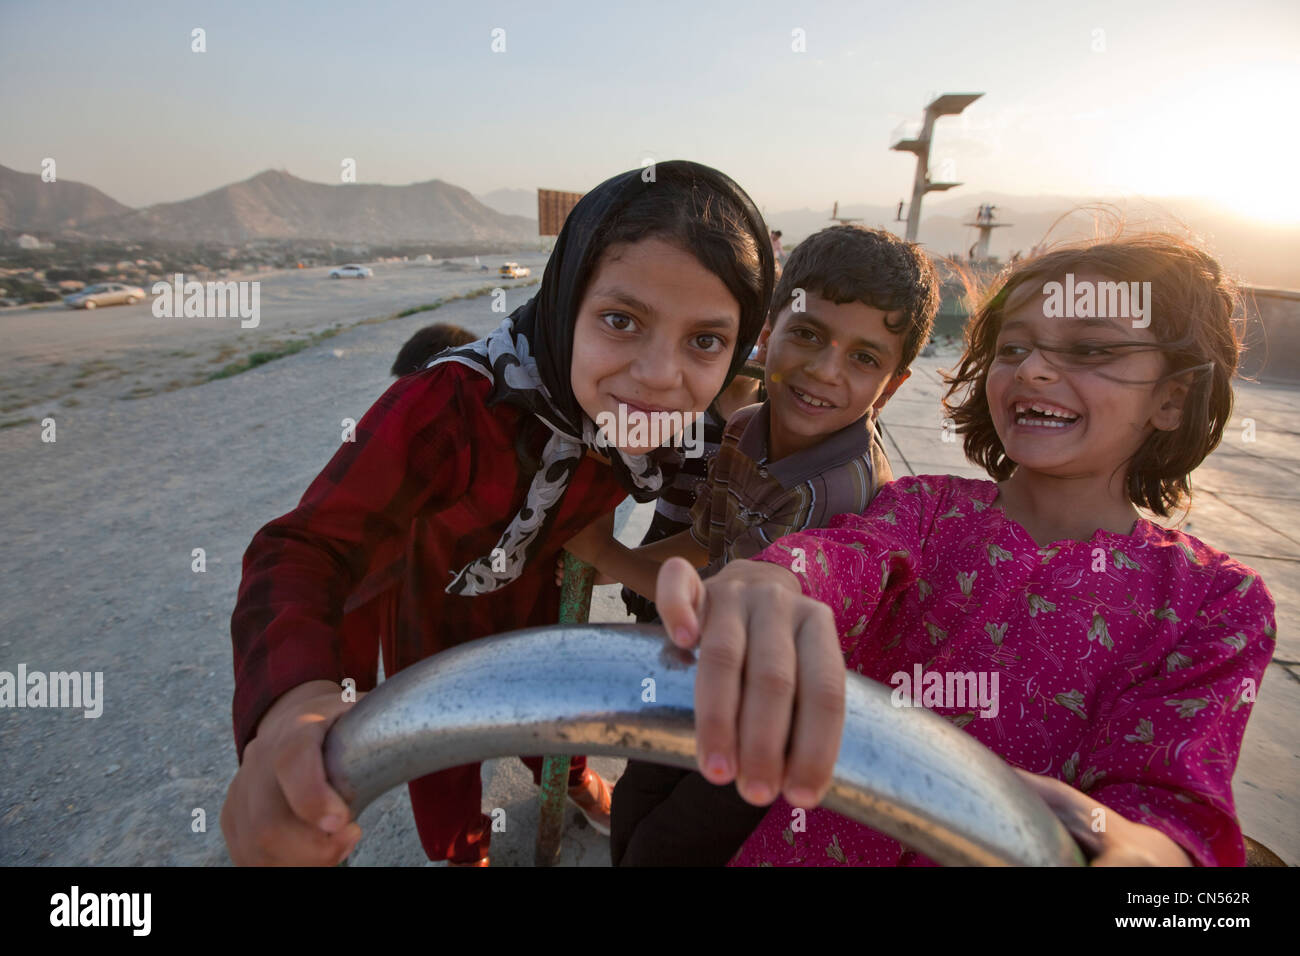 Afghanistan, Kabul, Bibi Maru Hill, young girls playing in an abandonned swimming pool - Stock Image